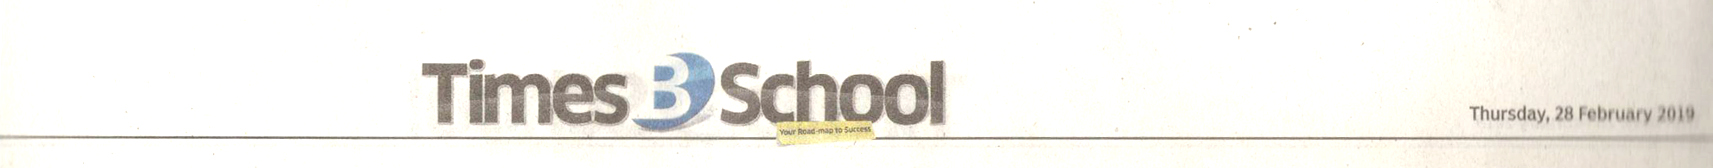 JIMS Rohini Ranked 29th among Top 100 B- Schools in India.